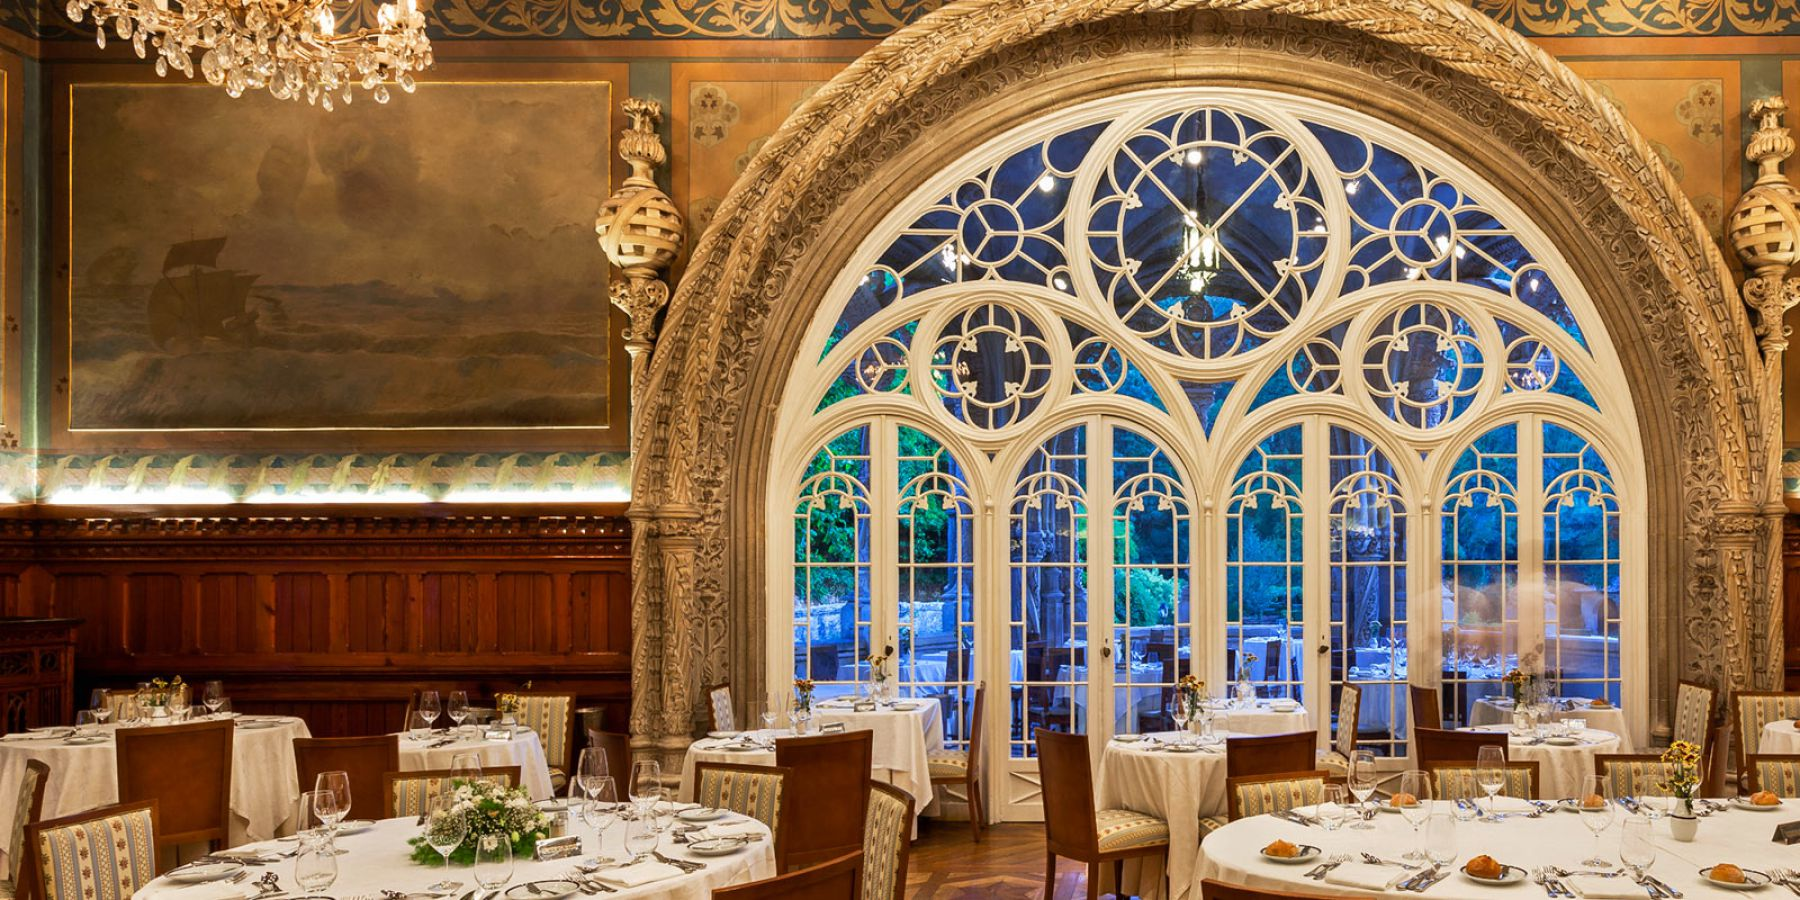 Restaurant - Palace Hotel do Bussaco *****